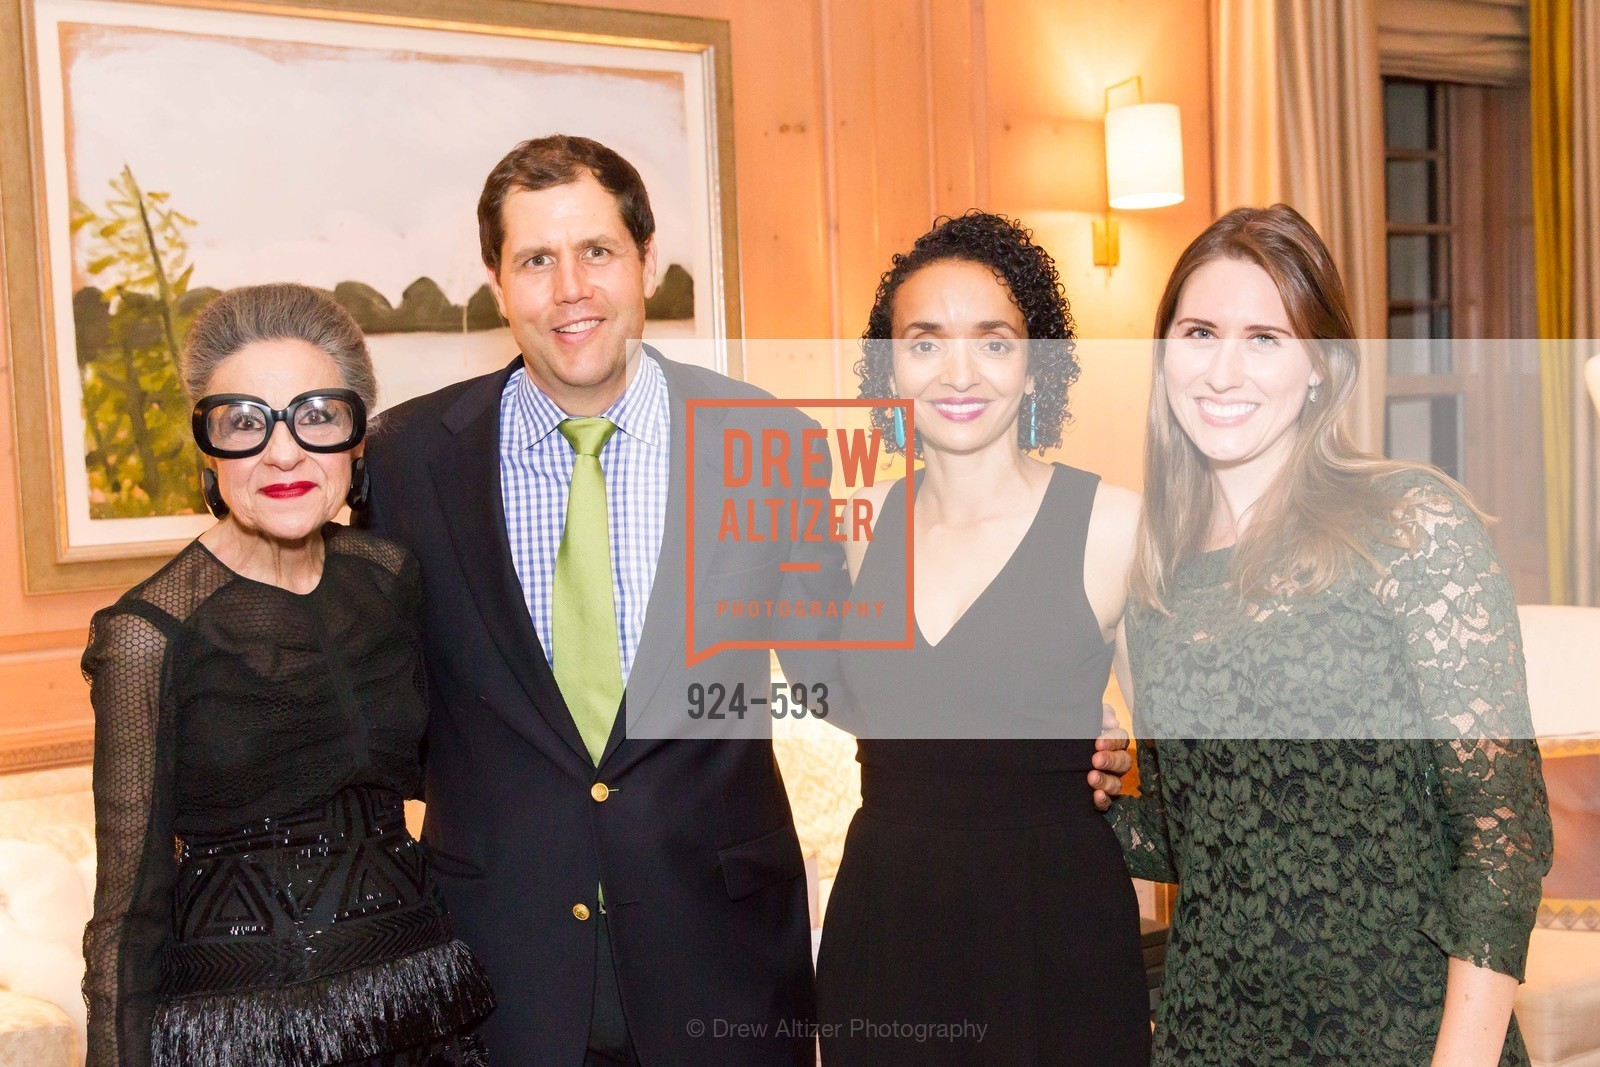 Joy Venturini Bianchi, Drew Altizer, Camille Hayes, Jami Ying, COUTURE FOR A CAUSE, US, October 5th, 2014,Drew Altizer, Drew Altizer Photography, full-service event agency, private events, San Francisco photographer, photographer California